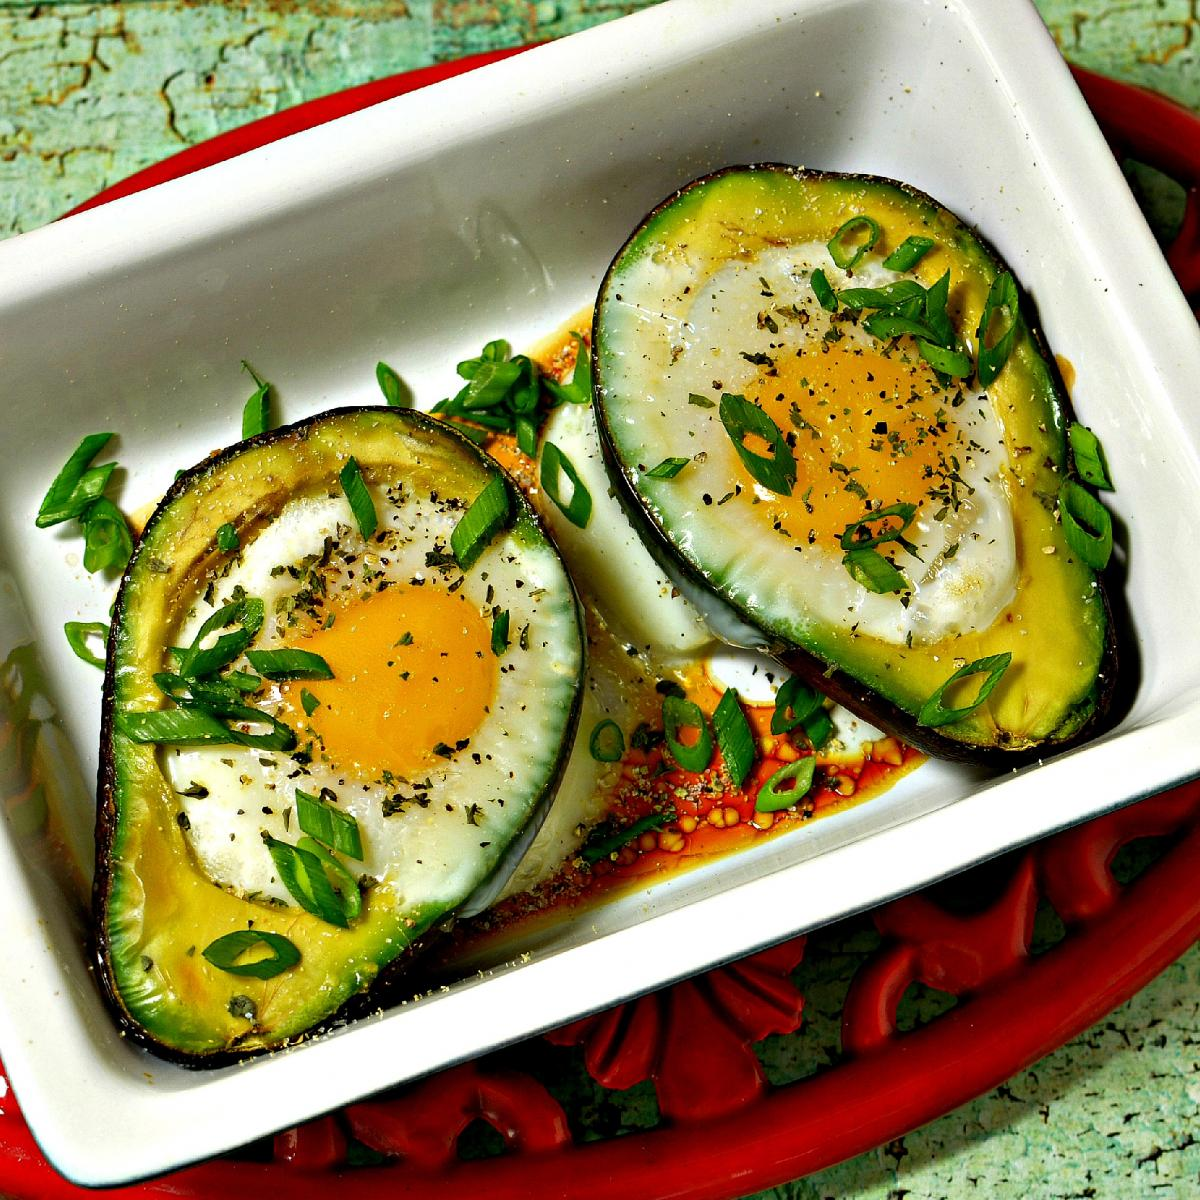 Recipes For Egg Bake Dishes: These Eggs Baked In Other Foods Are Adorable And Delicious